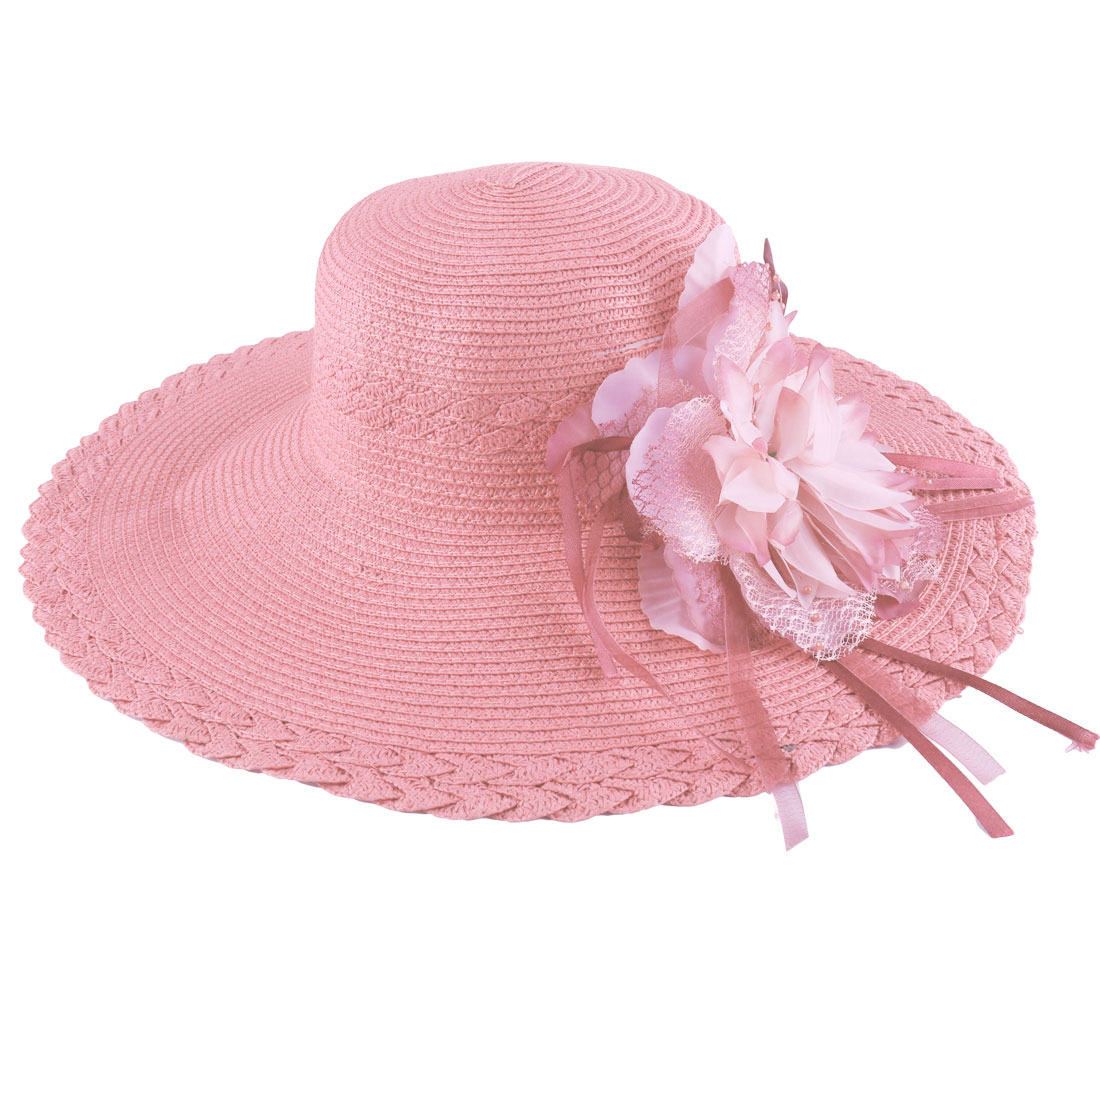 Ladies Elastic Neck Strap Textured Woven Straw Beach Sun Hat Pink